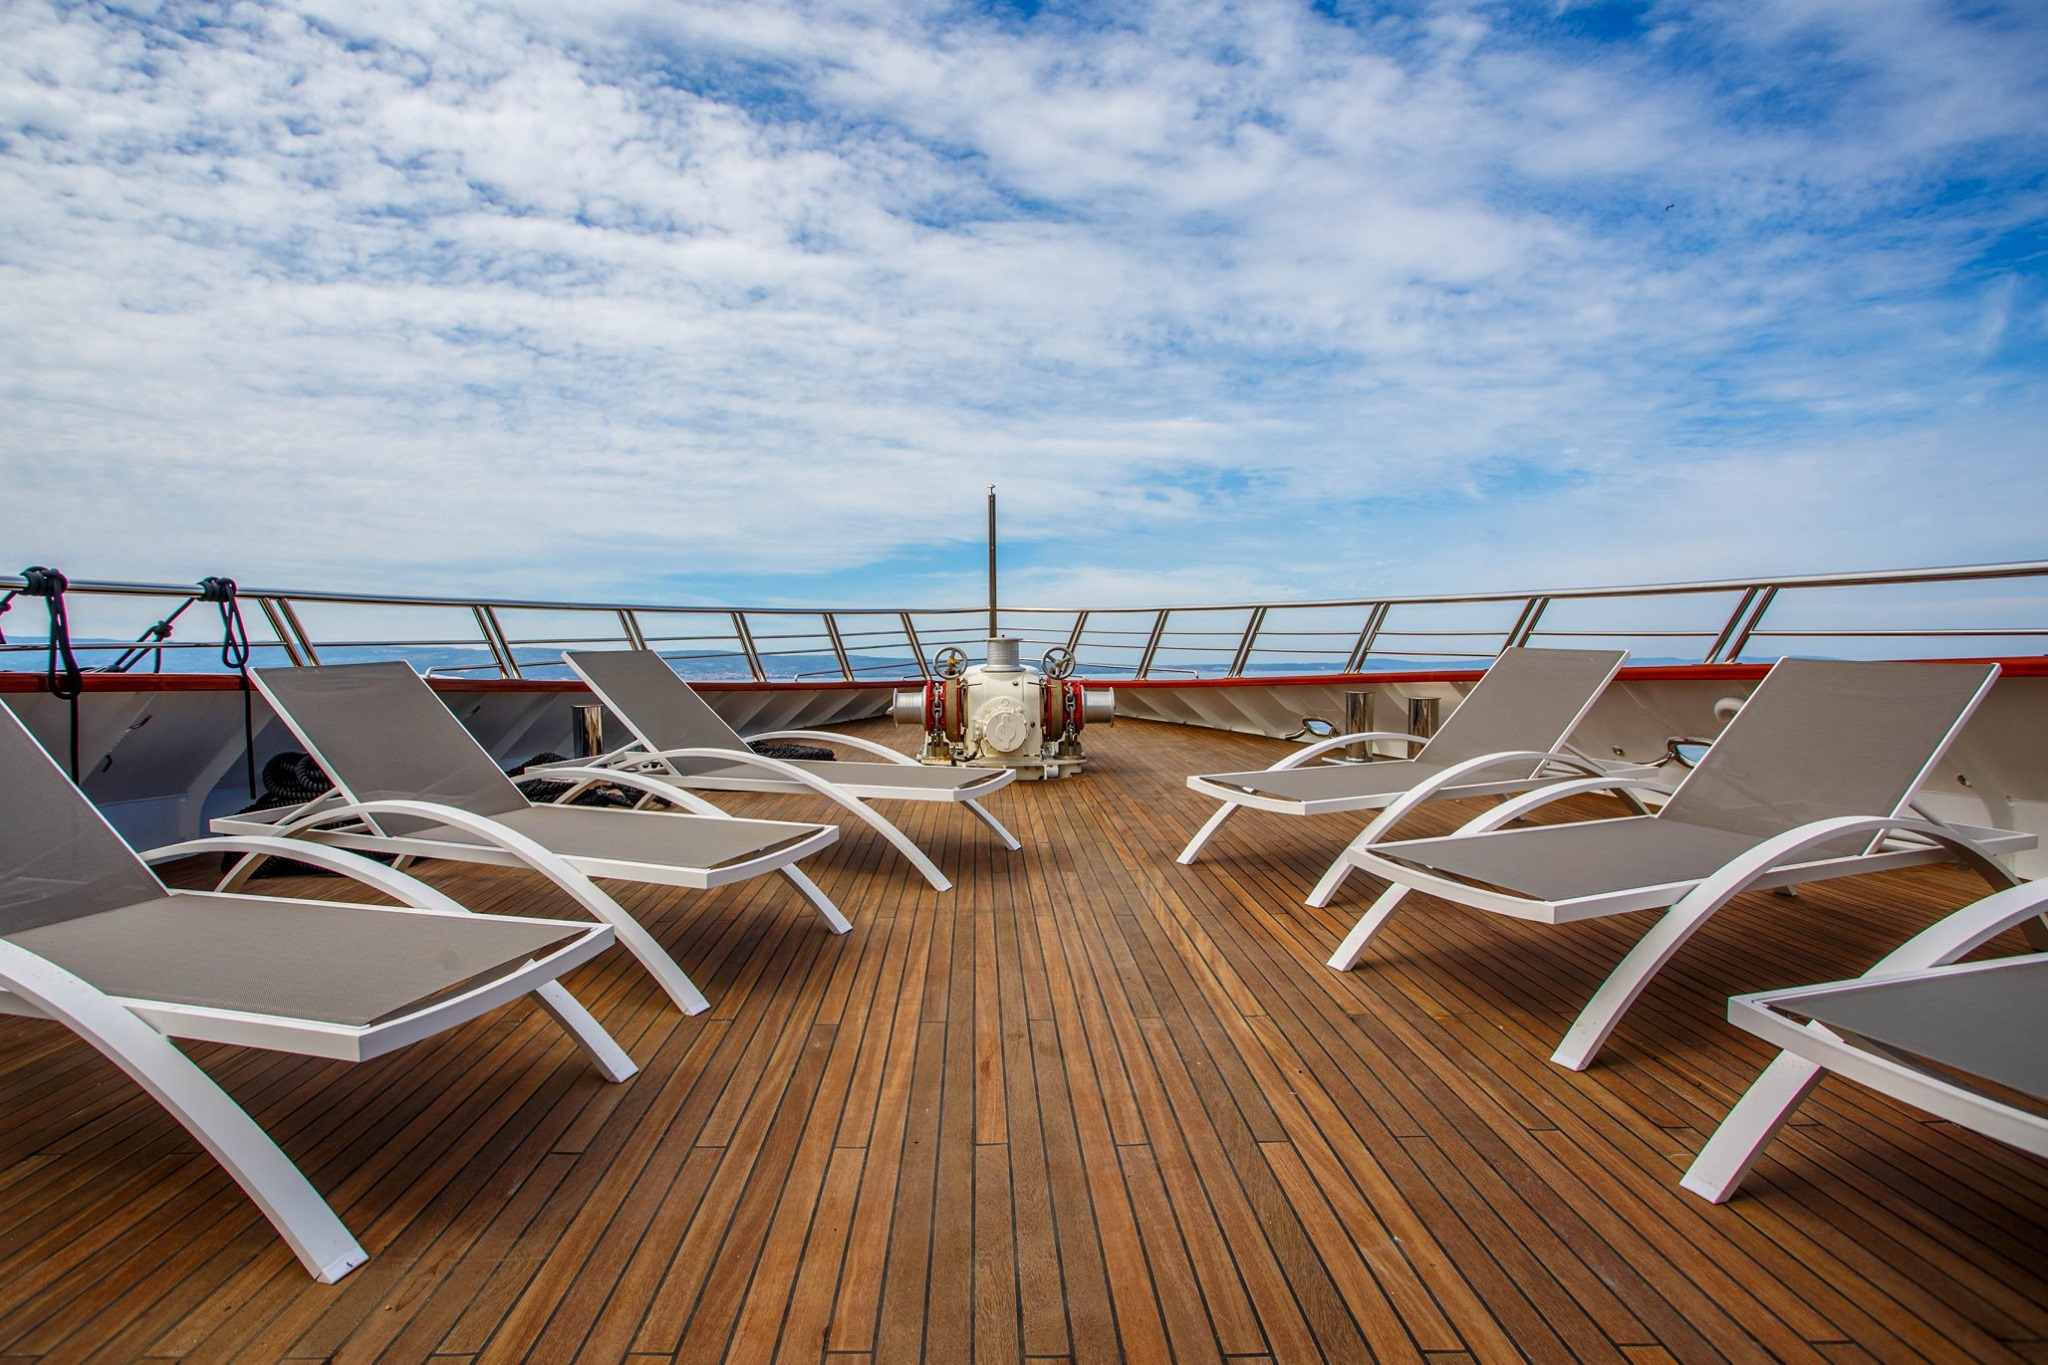 Adriatic Discovery Cruise from Dubrovnik to Split on Ban 15